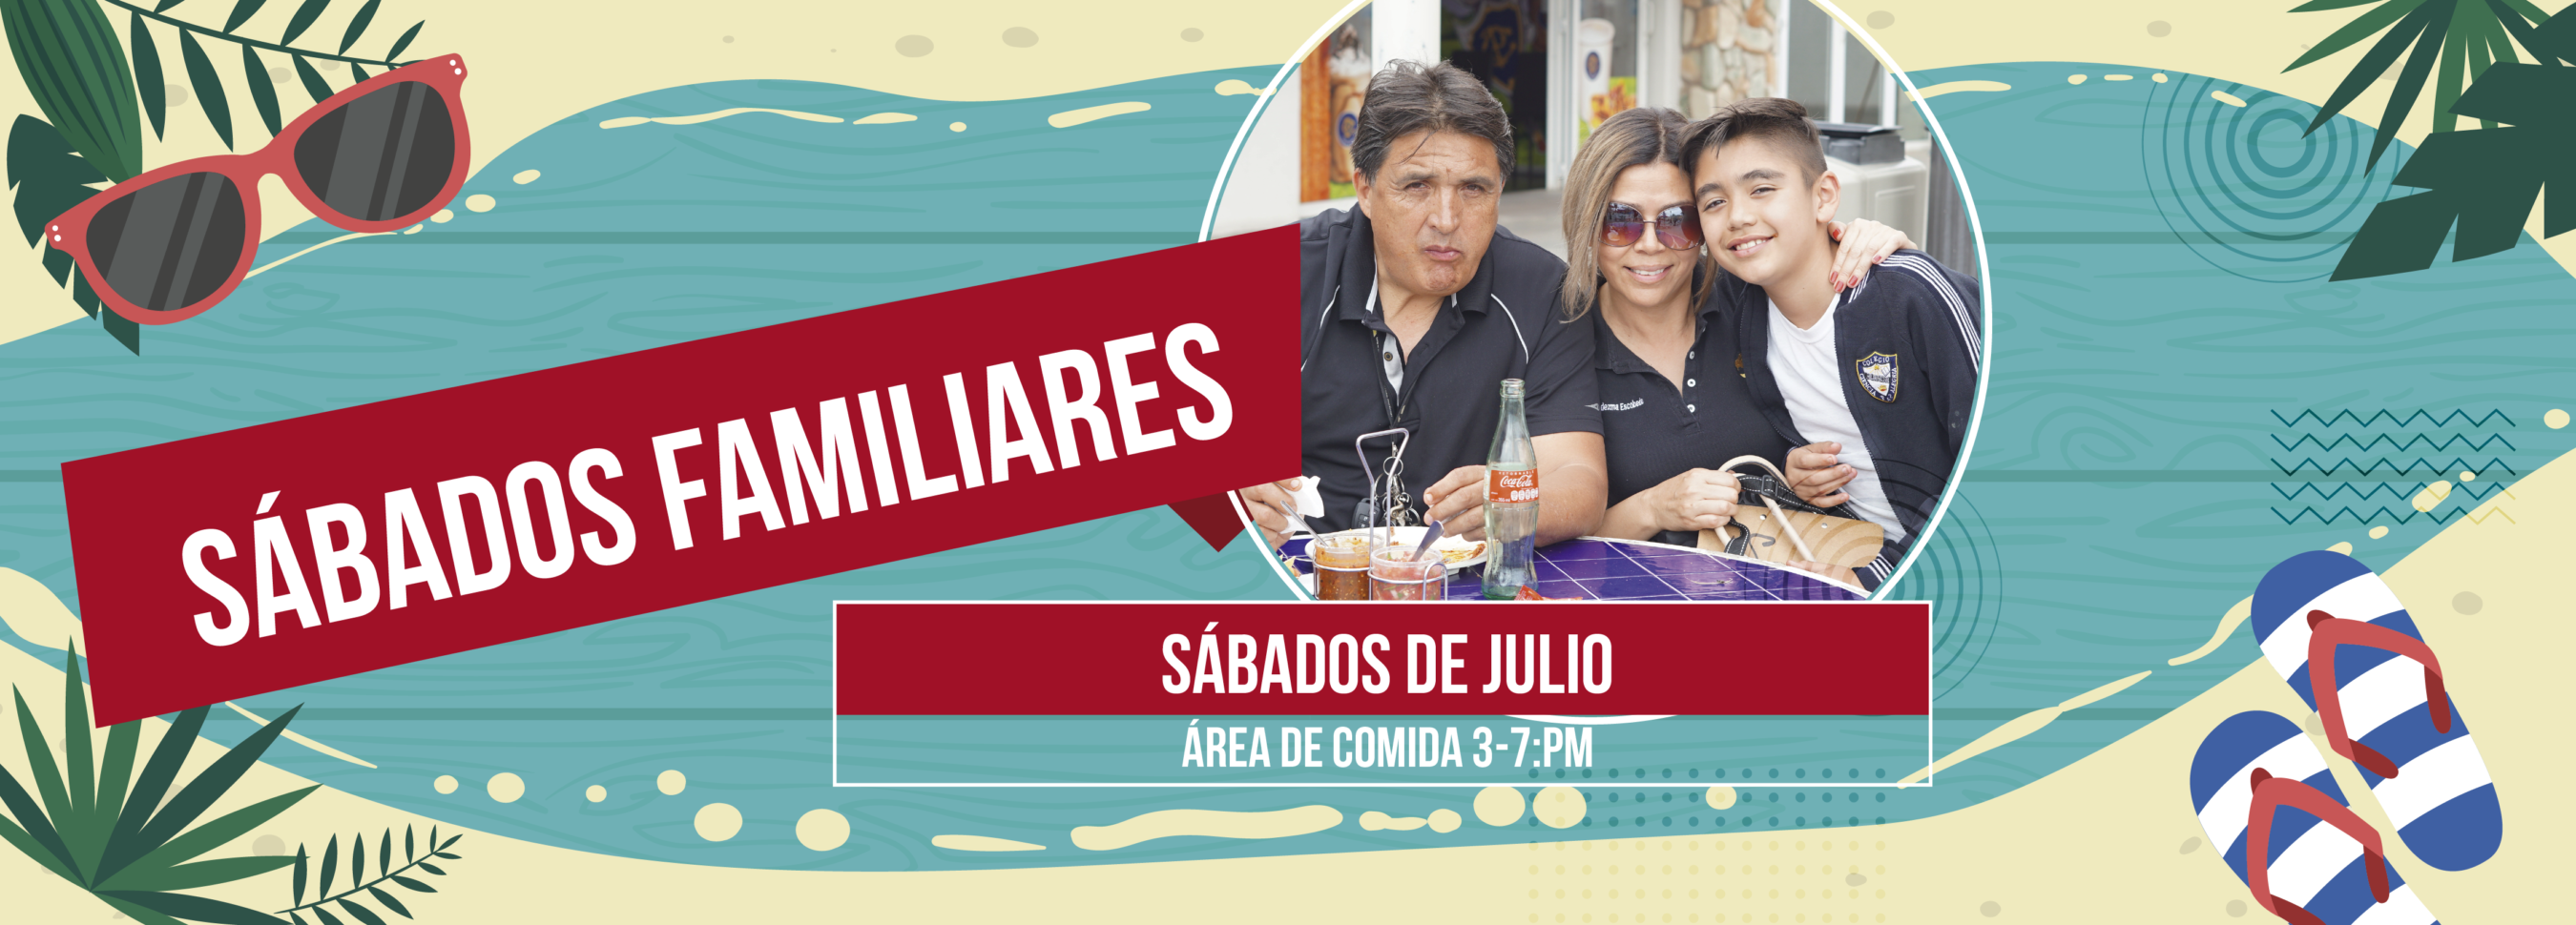 banners julio-09